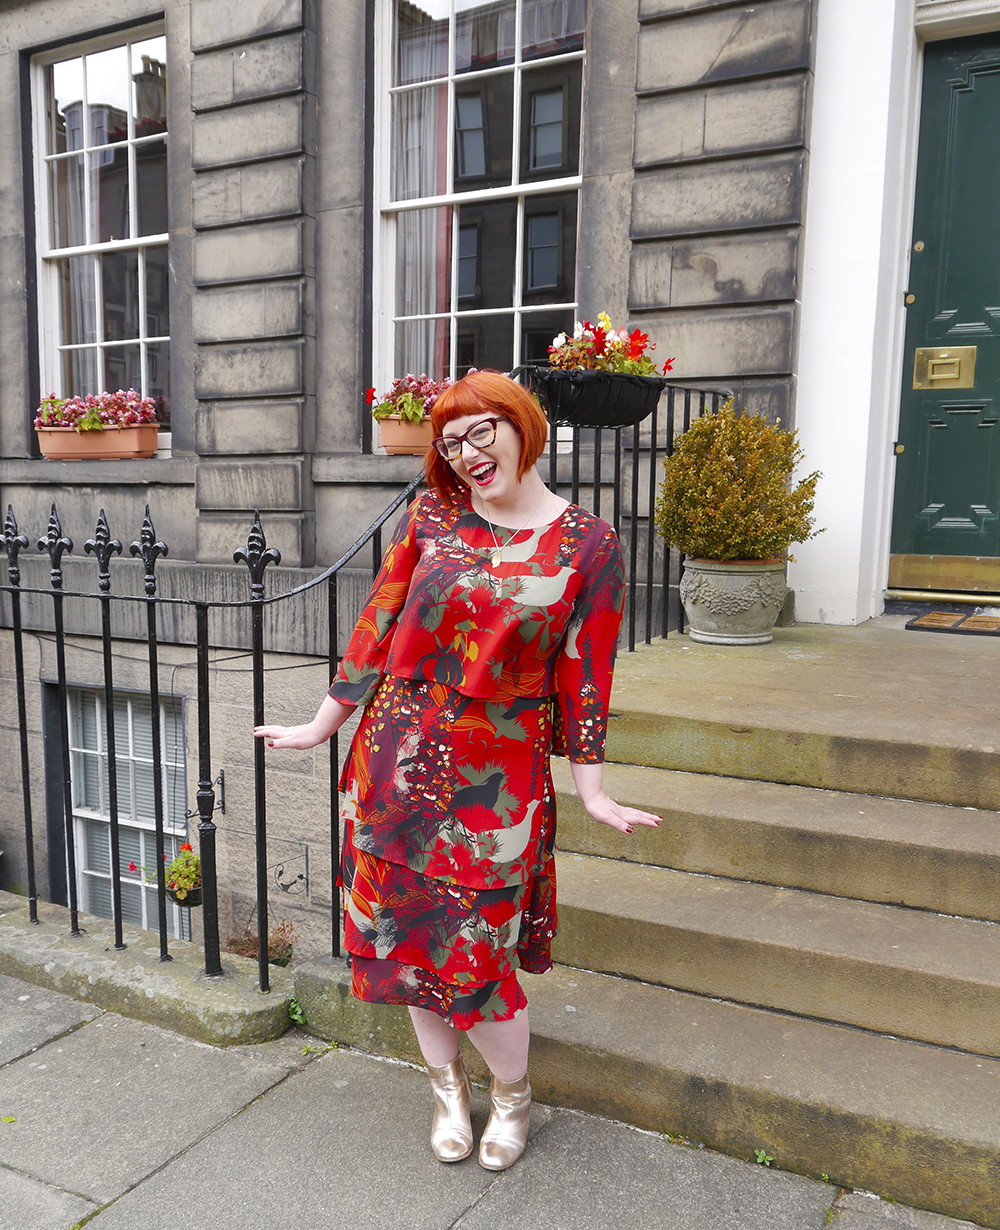 Scottish blogger Helen from Wardrobe Conversations gets dressed up in a red an orange patterned Biba dress from House of Fraser for Saturday at Edinburgh Cocktail Weekend